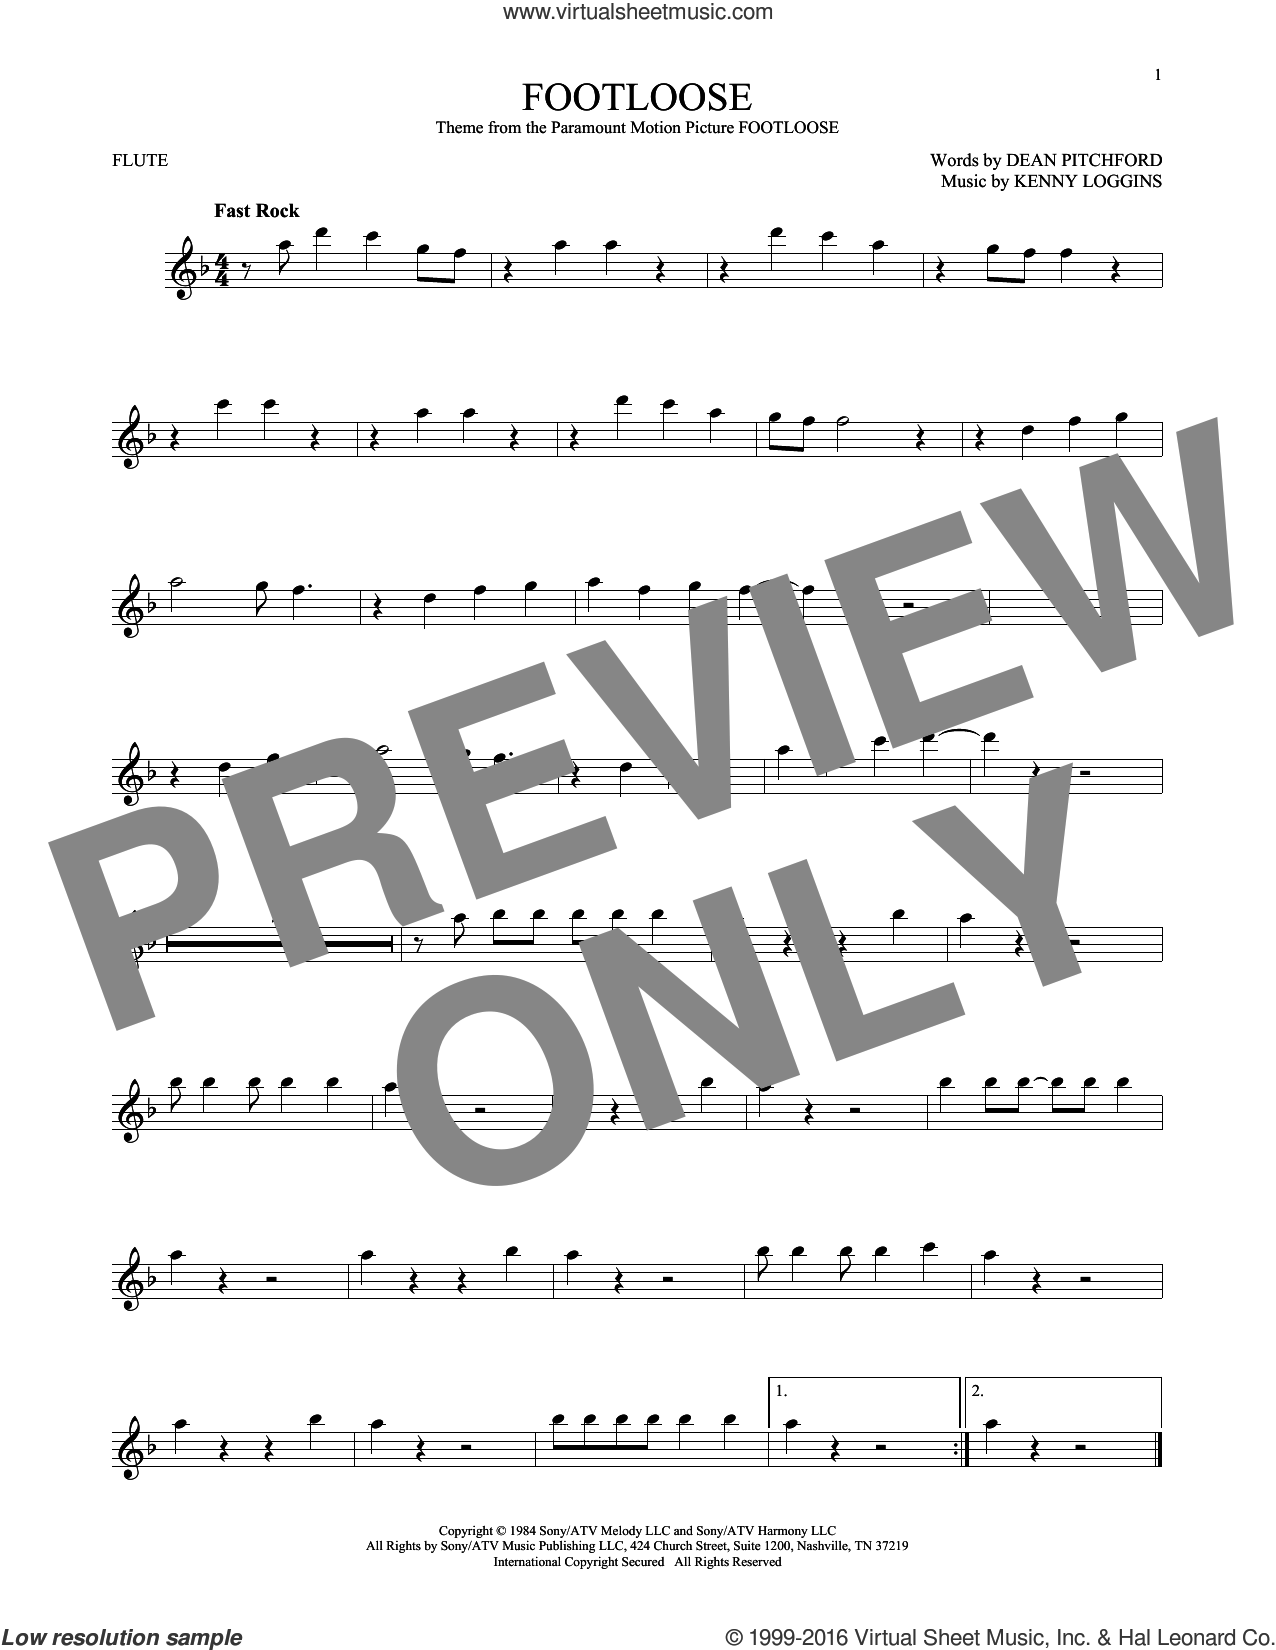 Footloose sheet music for flute solo by Kenny Loggins, Blake Shelton and Dean Pitchford, intermediate skill level